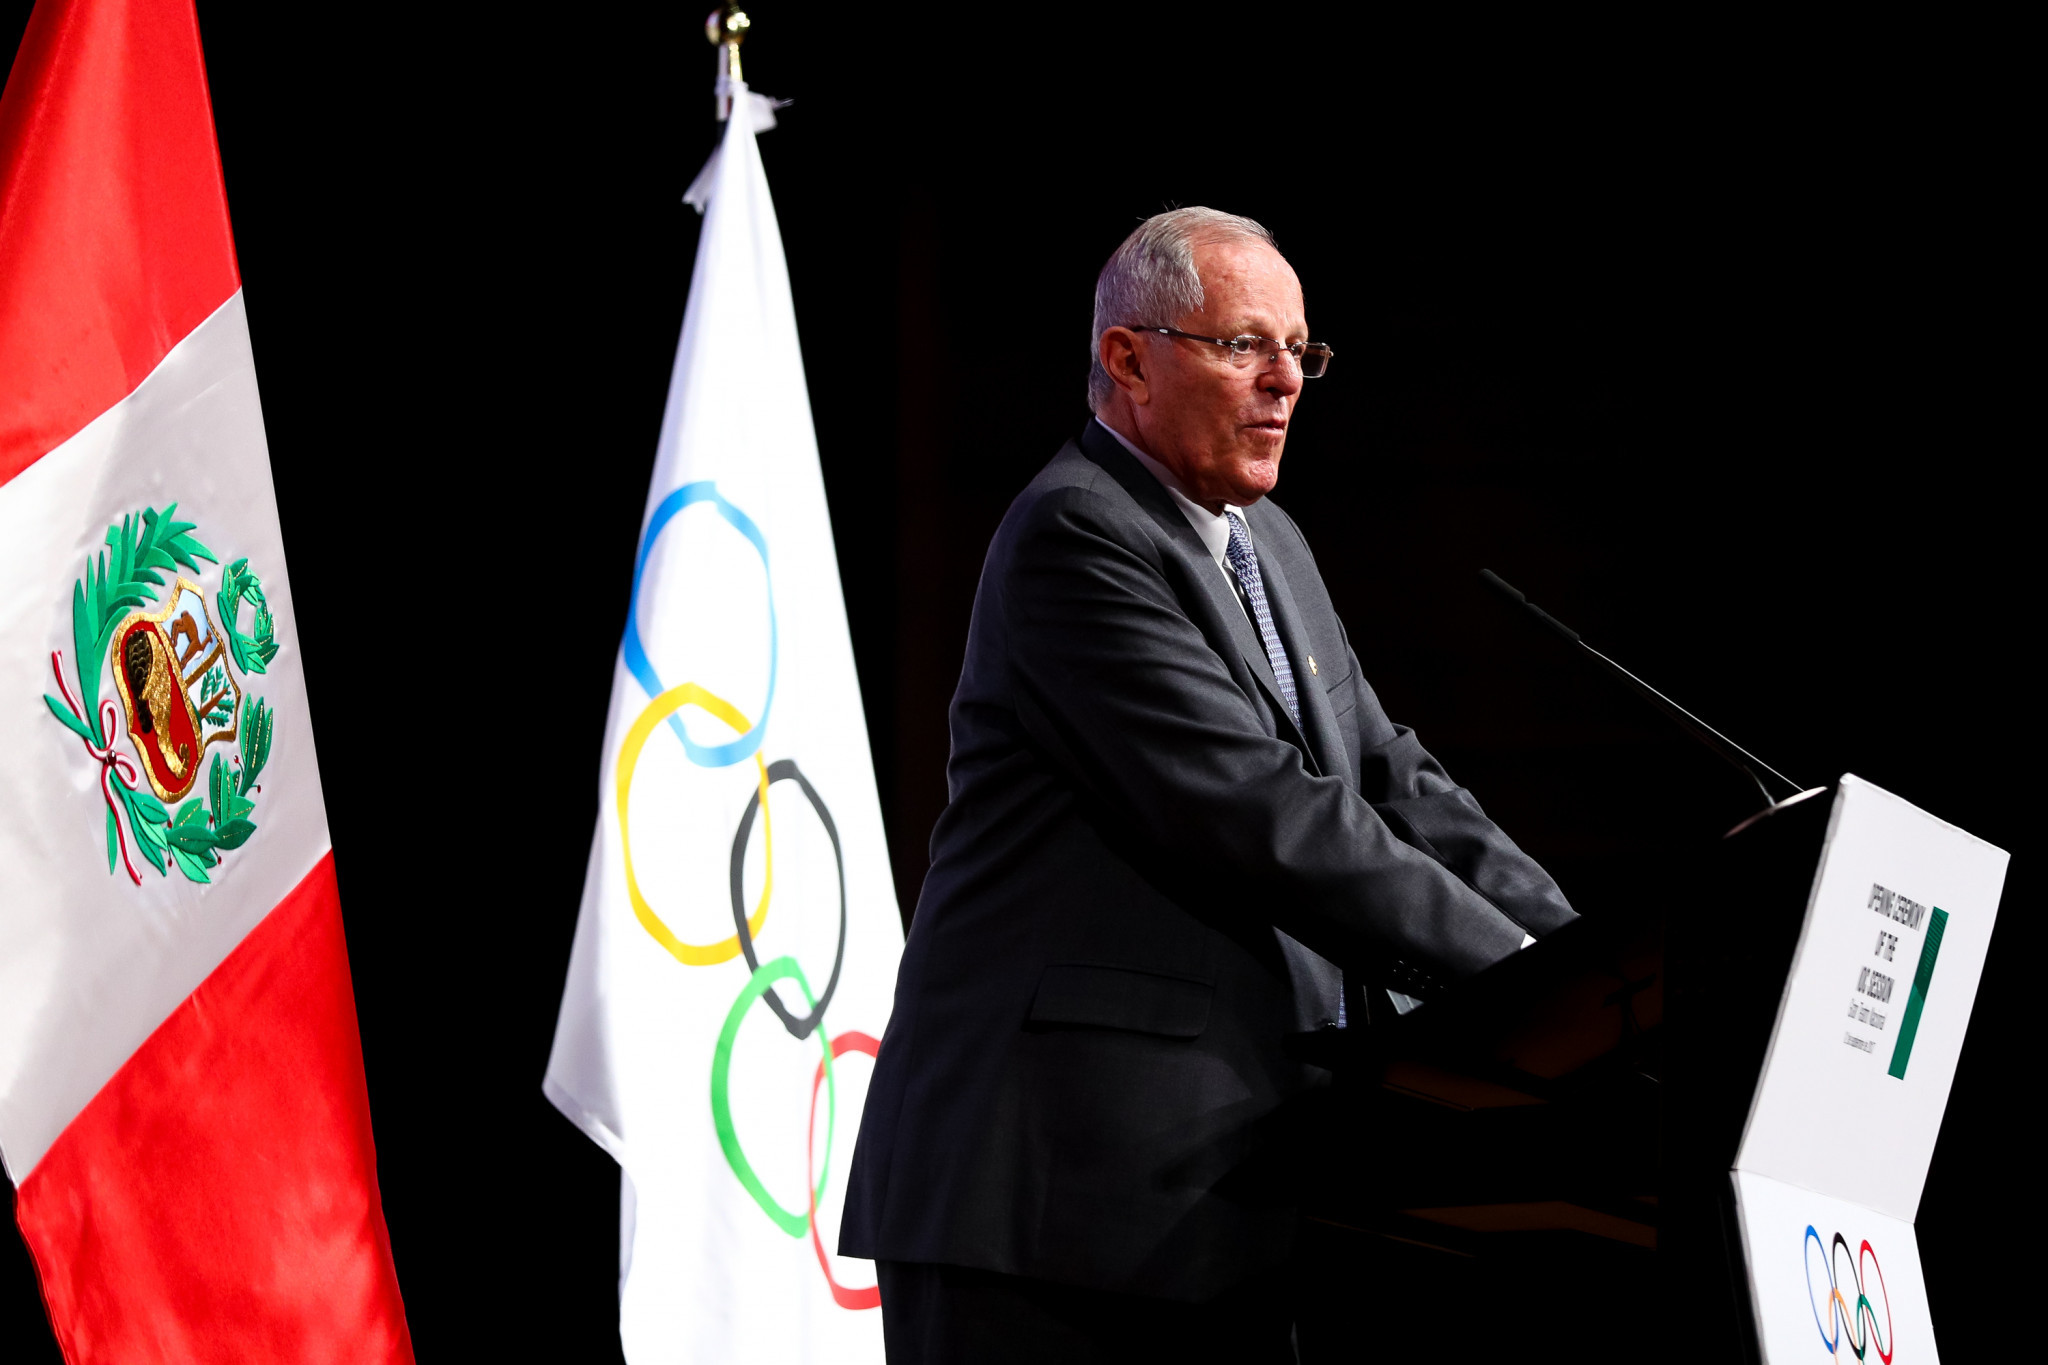 Peru President Pedro Pablo Kuczynski delivered the opening speech of the Ceremony ©Getty Images